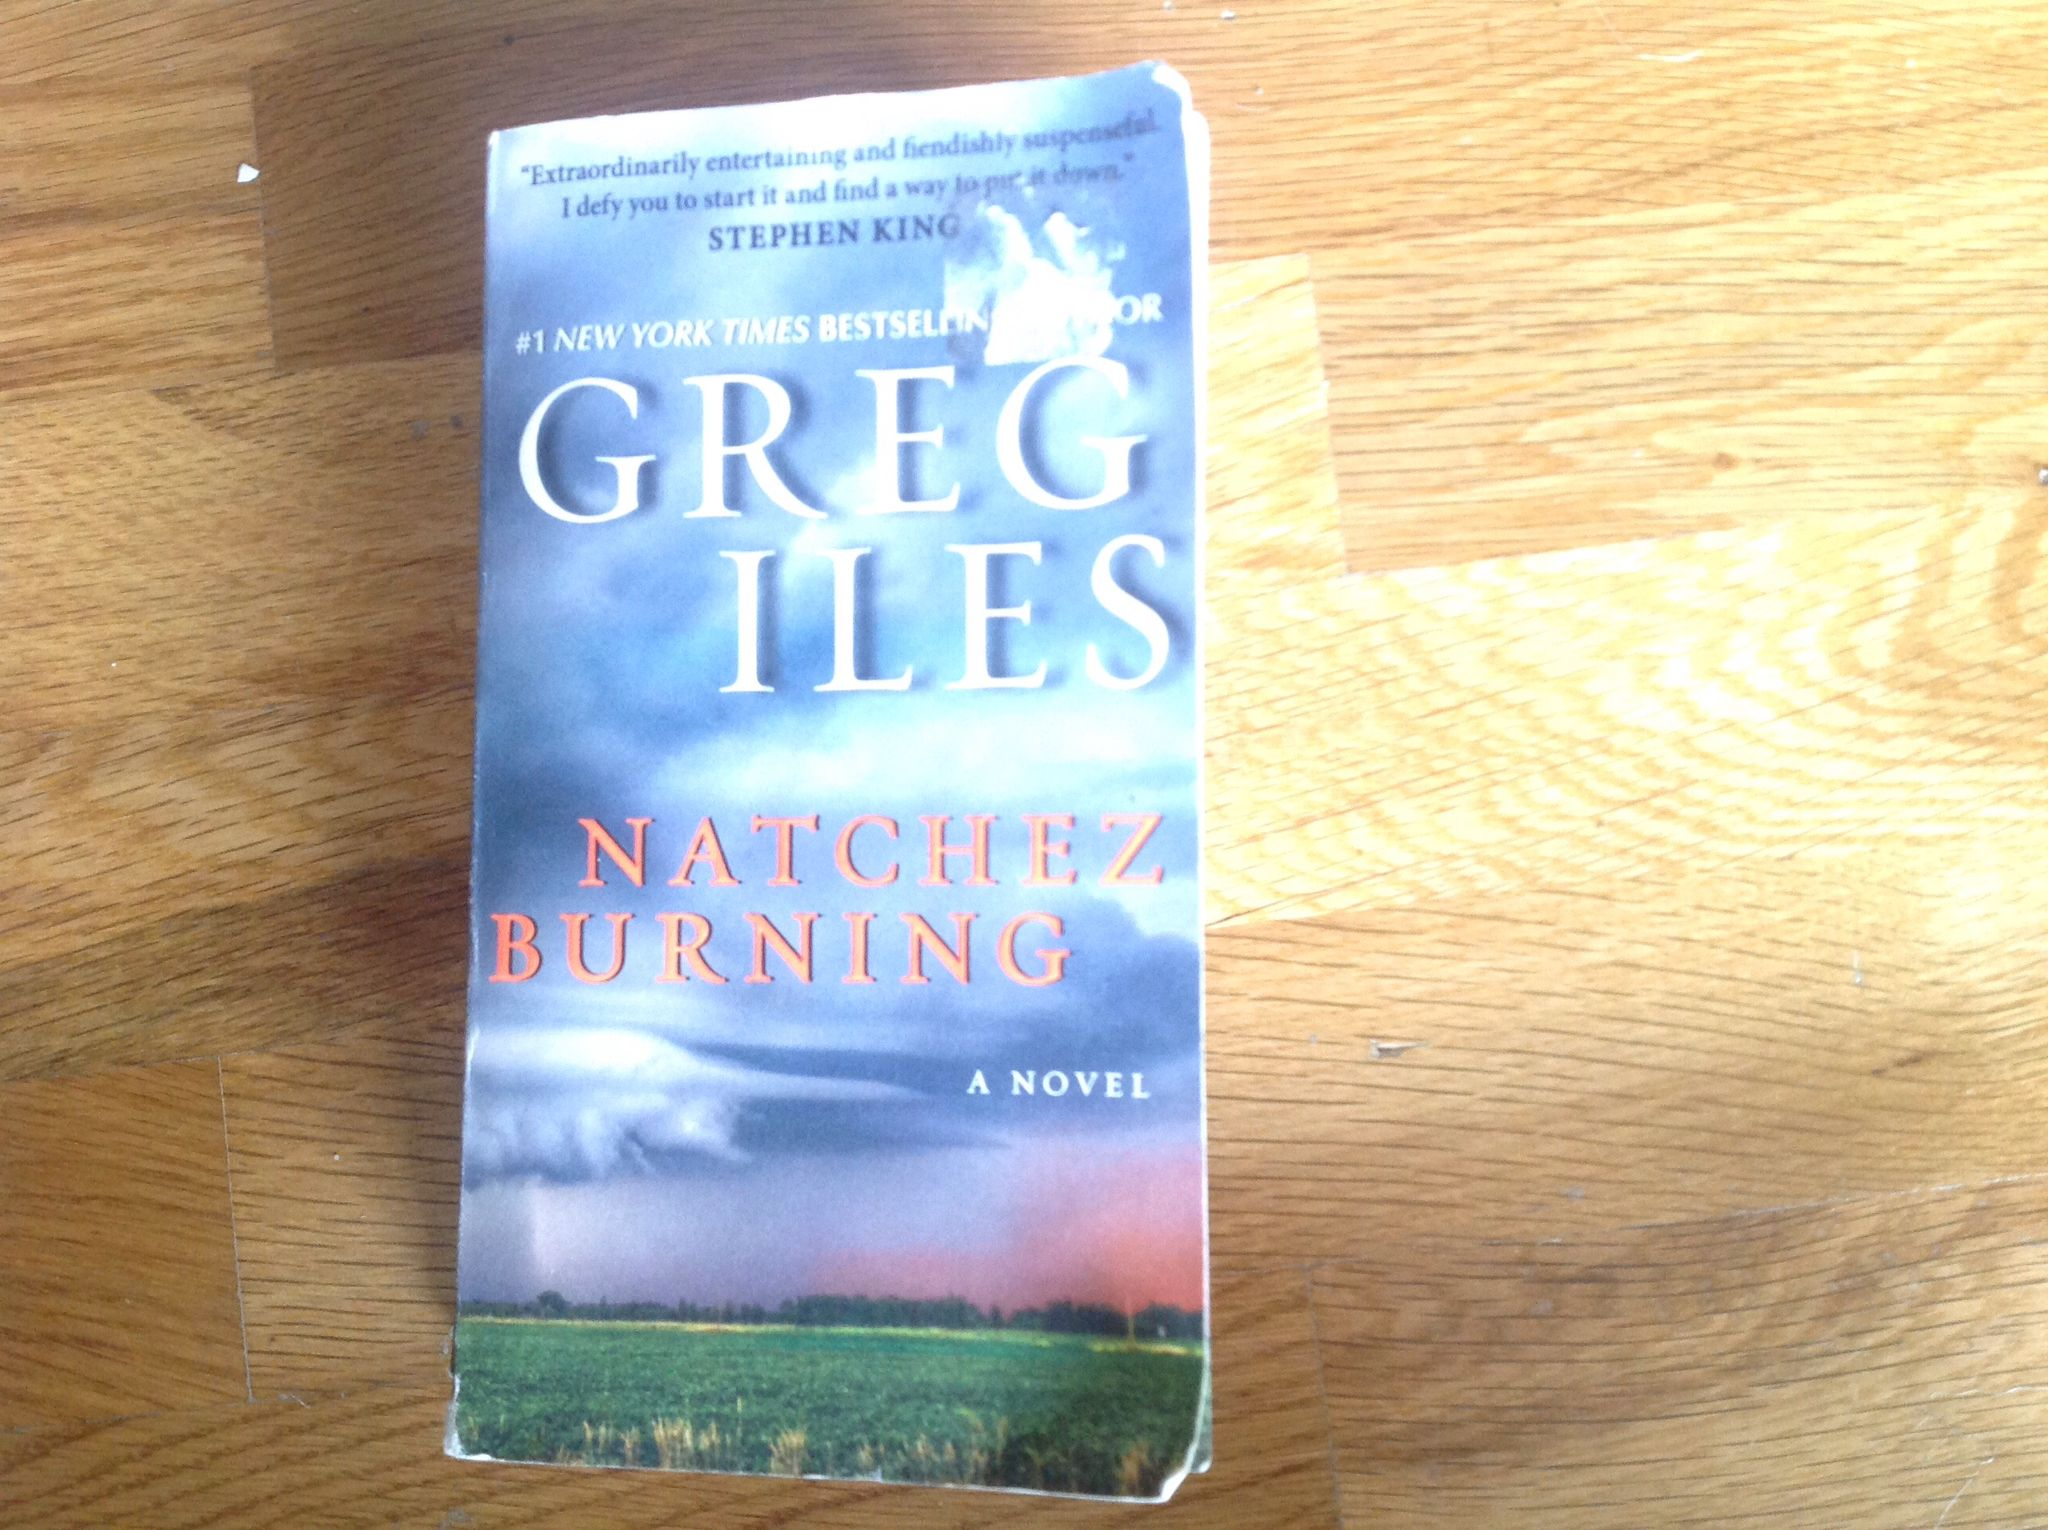 Goodwill purchase greg iles book 1 in trilogy natchez